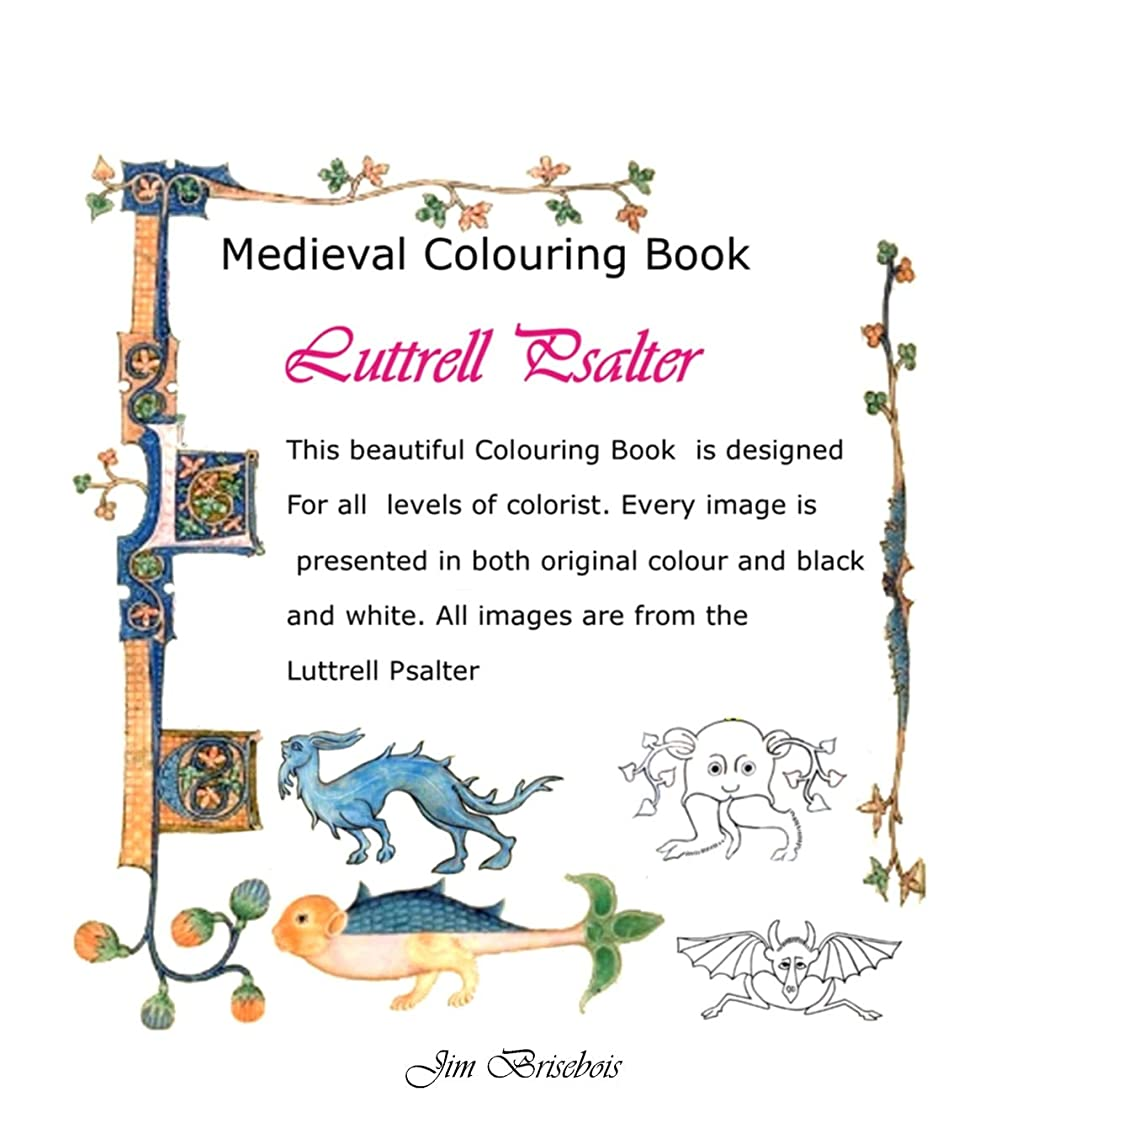 足防衛増幅Luttrell Psalter: Medieval Colouring Book